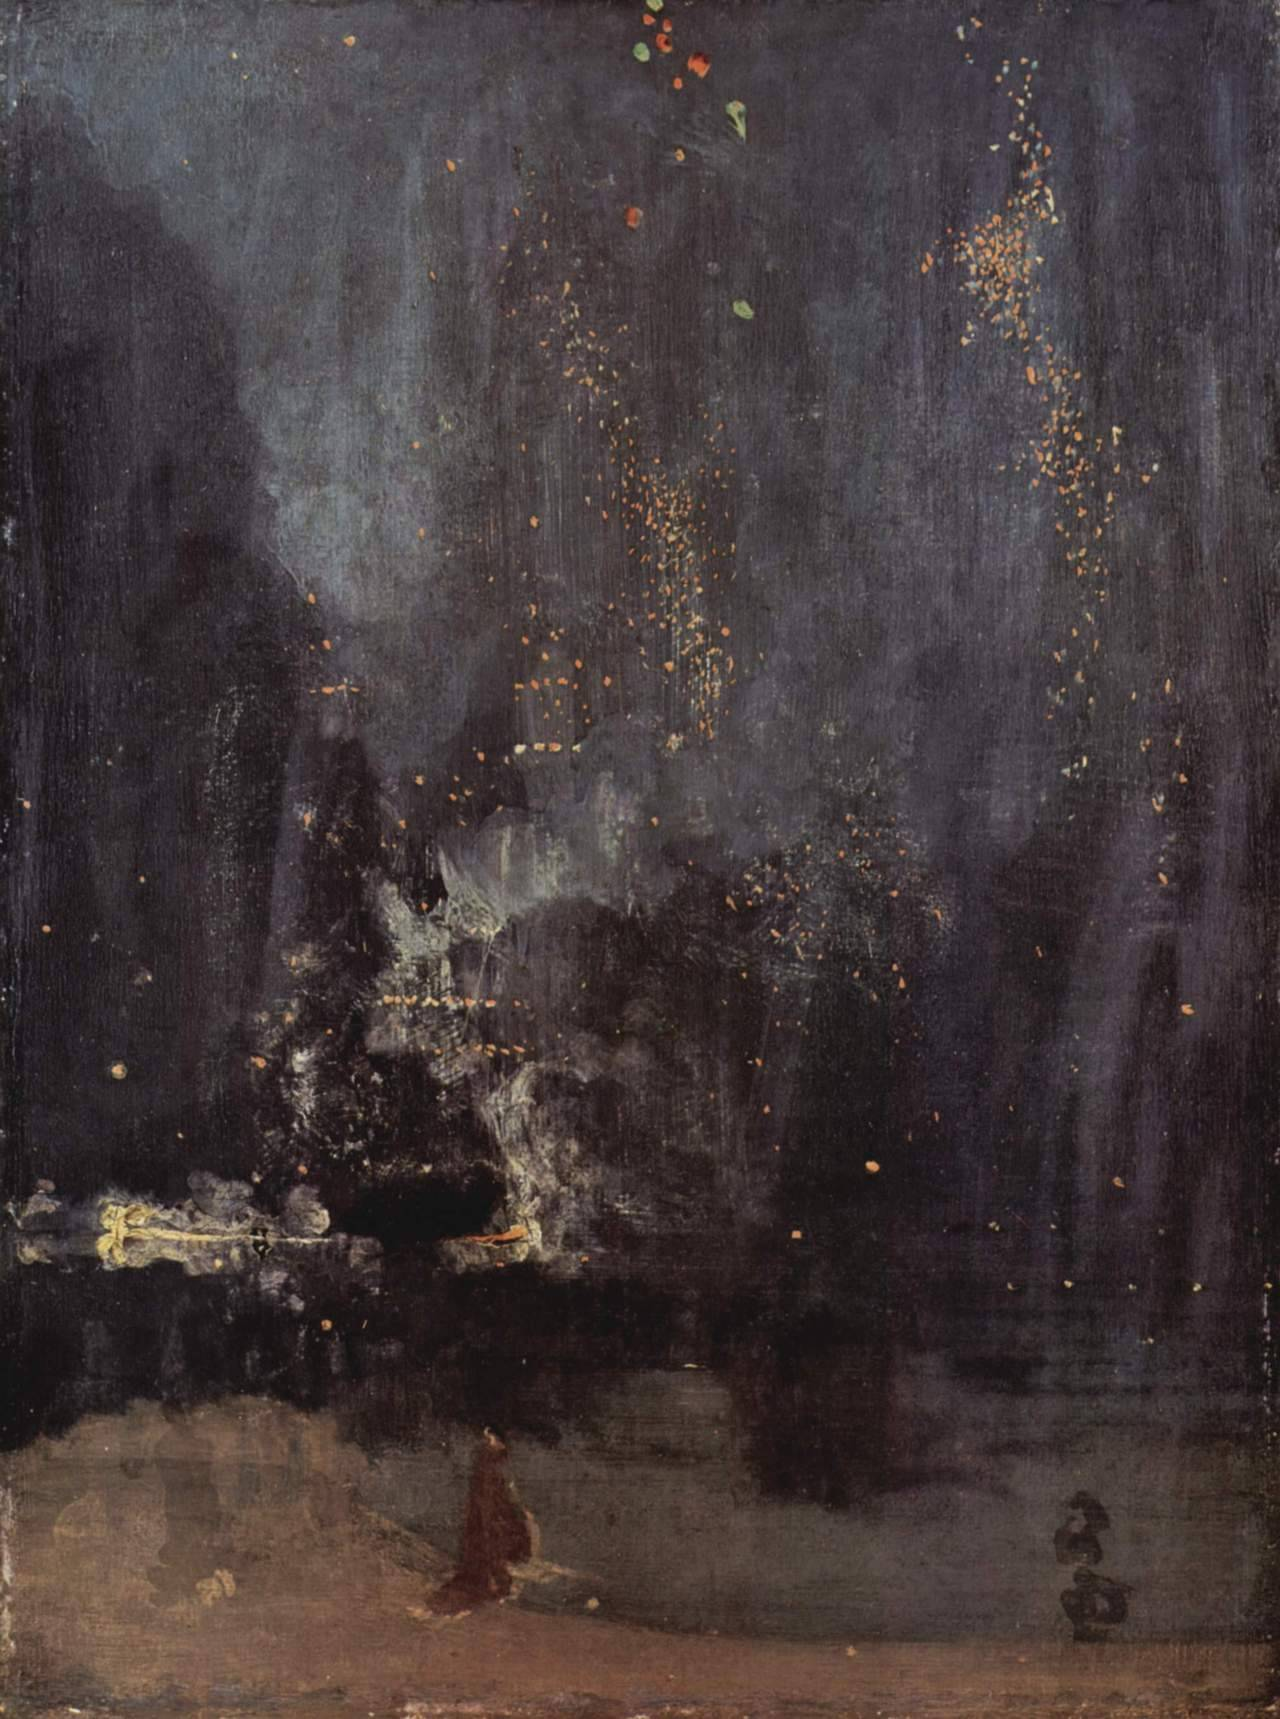 museumuesum:  James Abbott McNeill Whistler Nocturne in Black and Gold – The Falling Rocket, c. 1872-1877 oil on canvas 60.3 cm × 46.6 cm (23.7 in × 18.3 in)